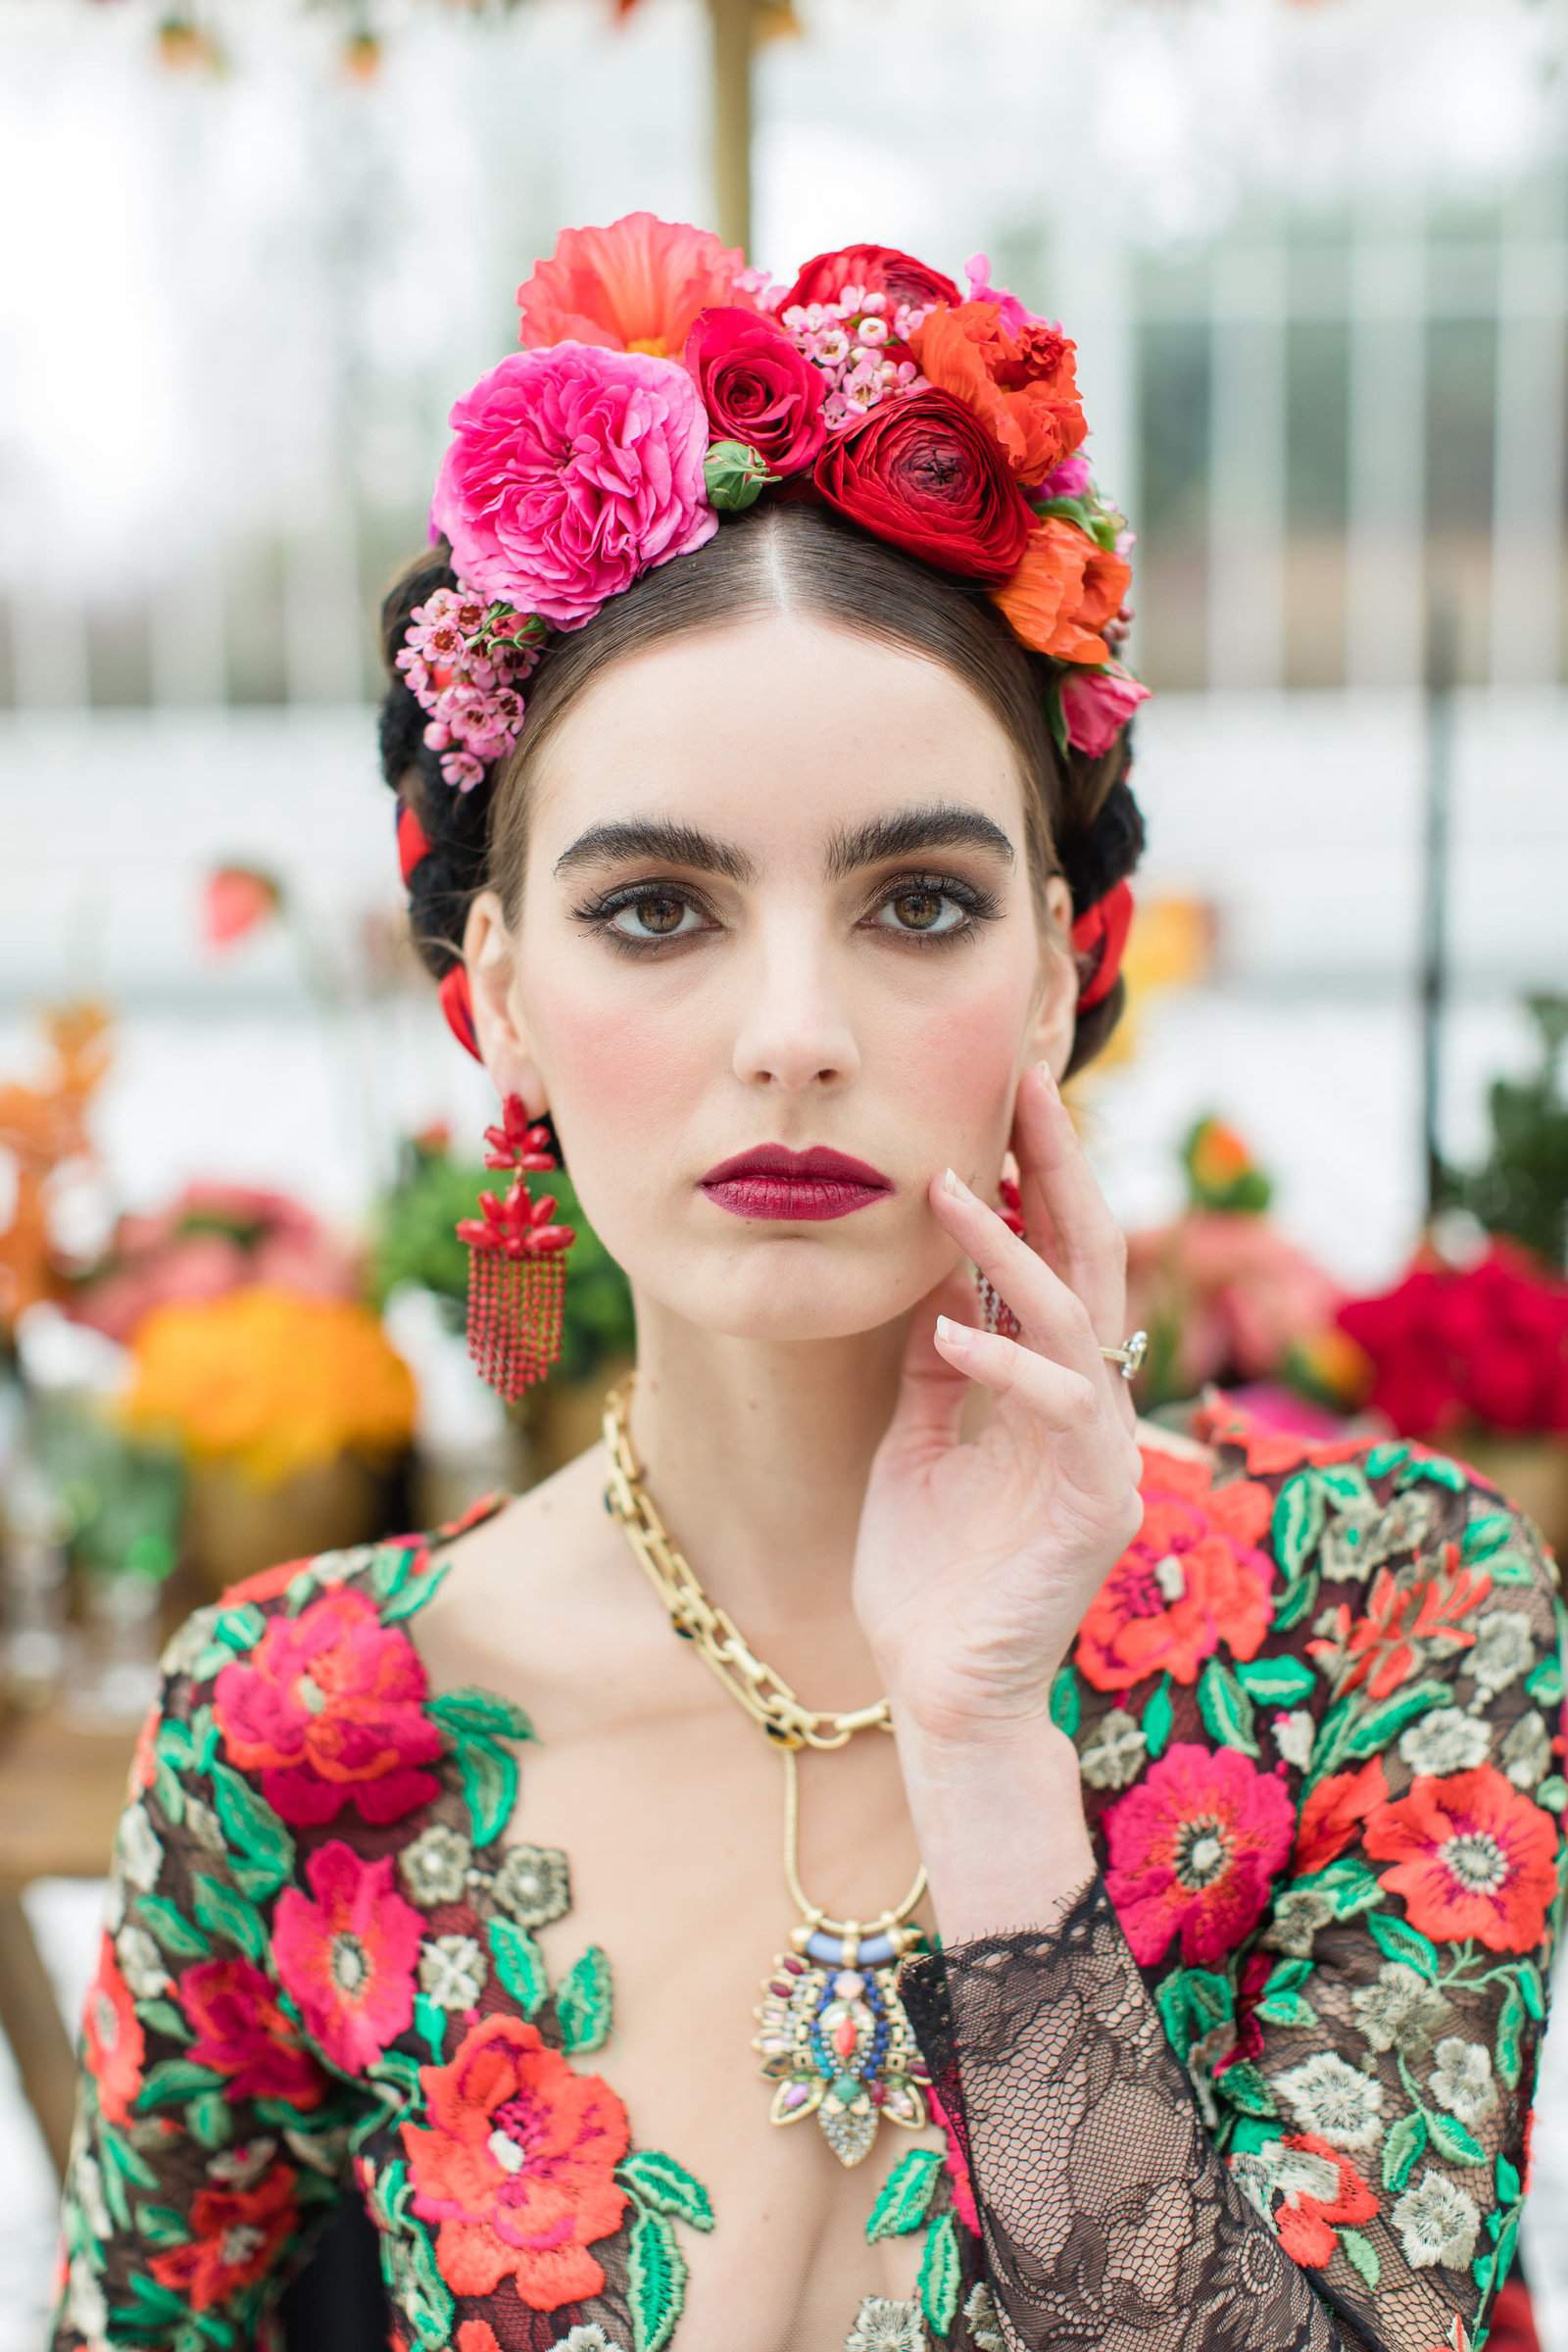 Frida-Kahlo-embroidered-floral-dress-JoanneFlemingDesign-RobertaFacchiniPhoto (22)